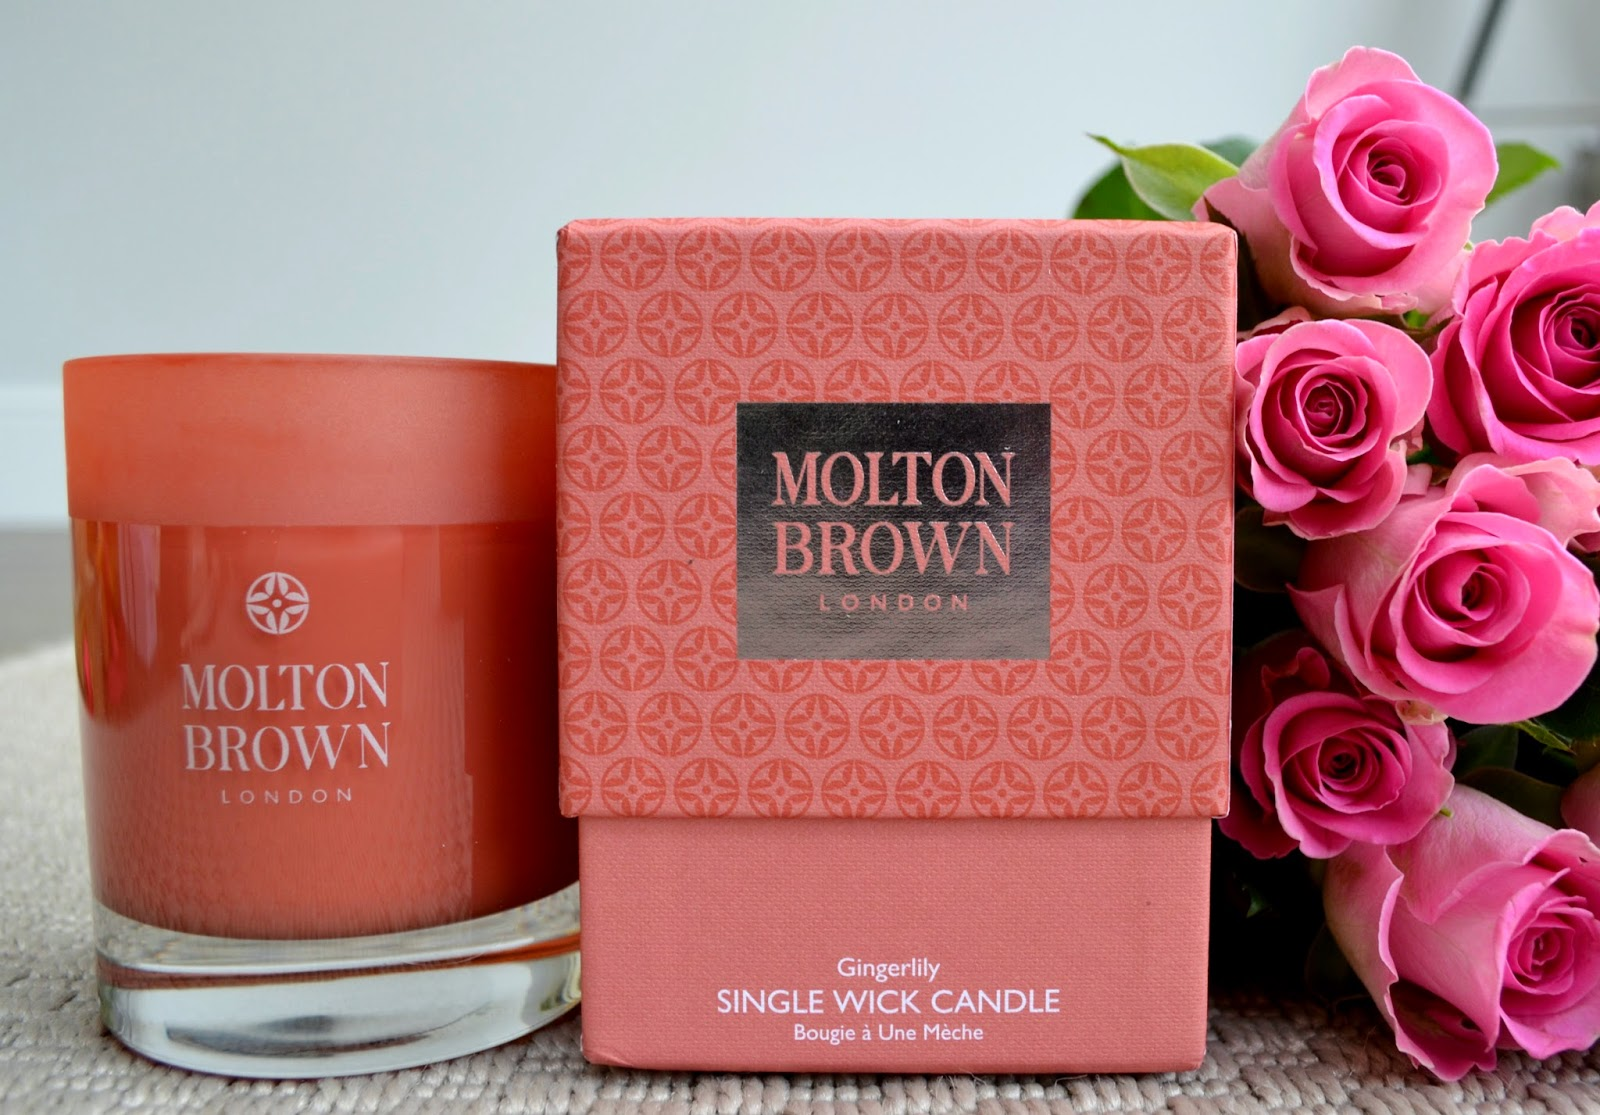 Molton Brown Gingerliliy candle